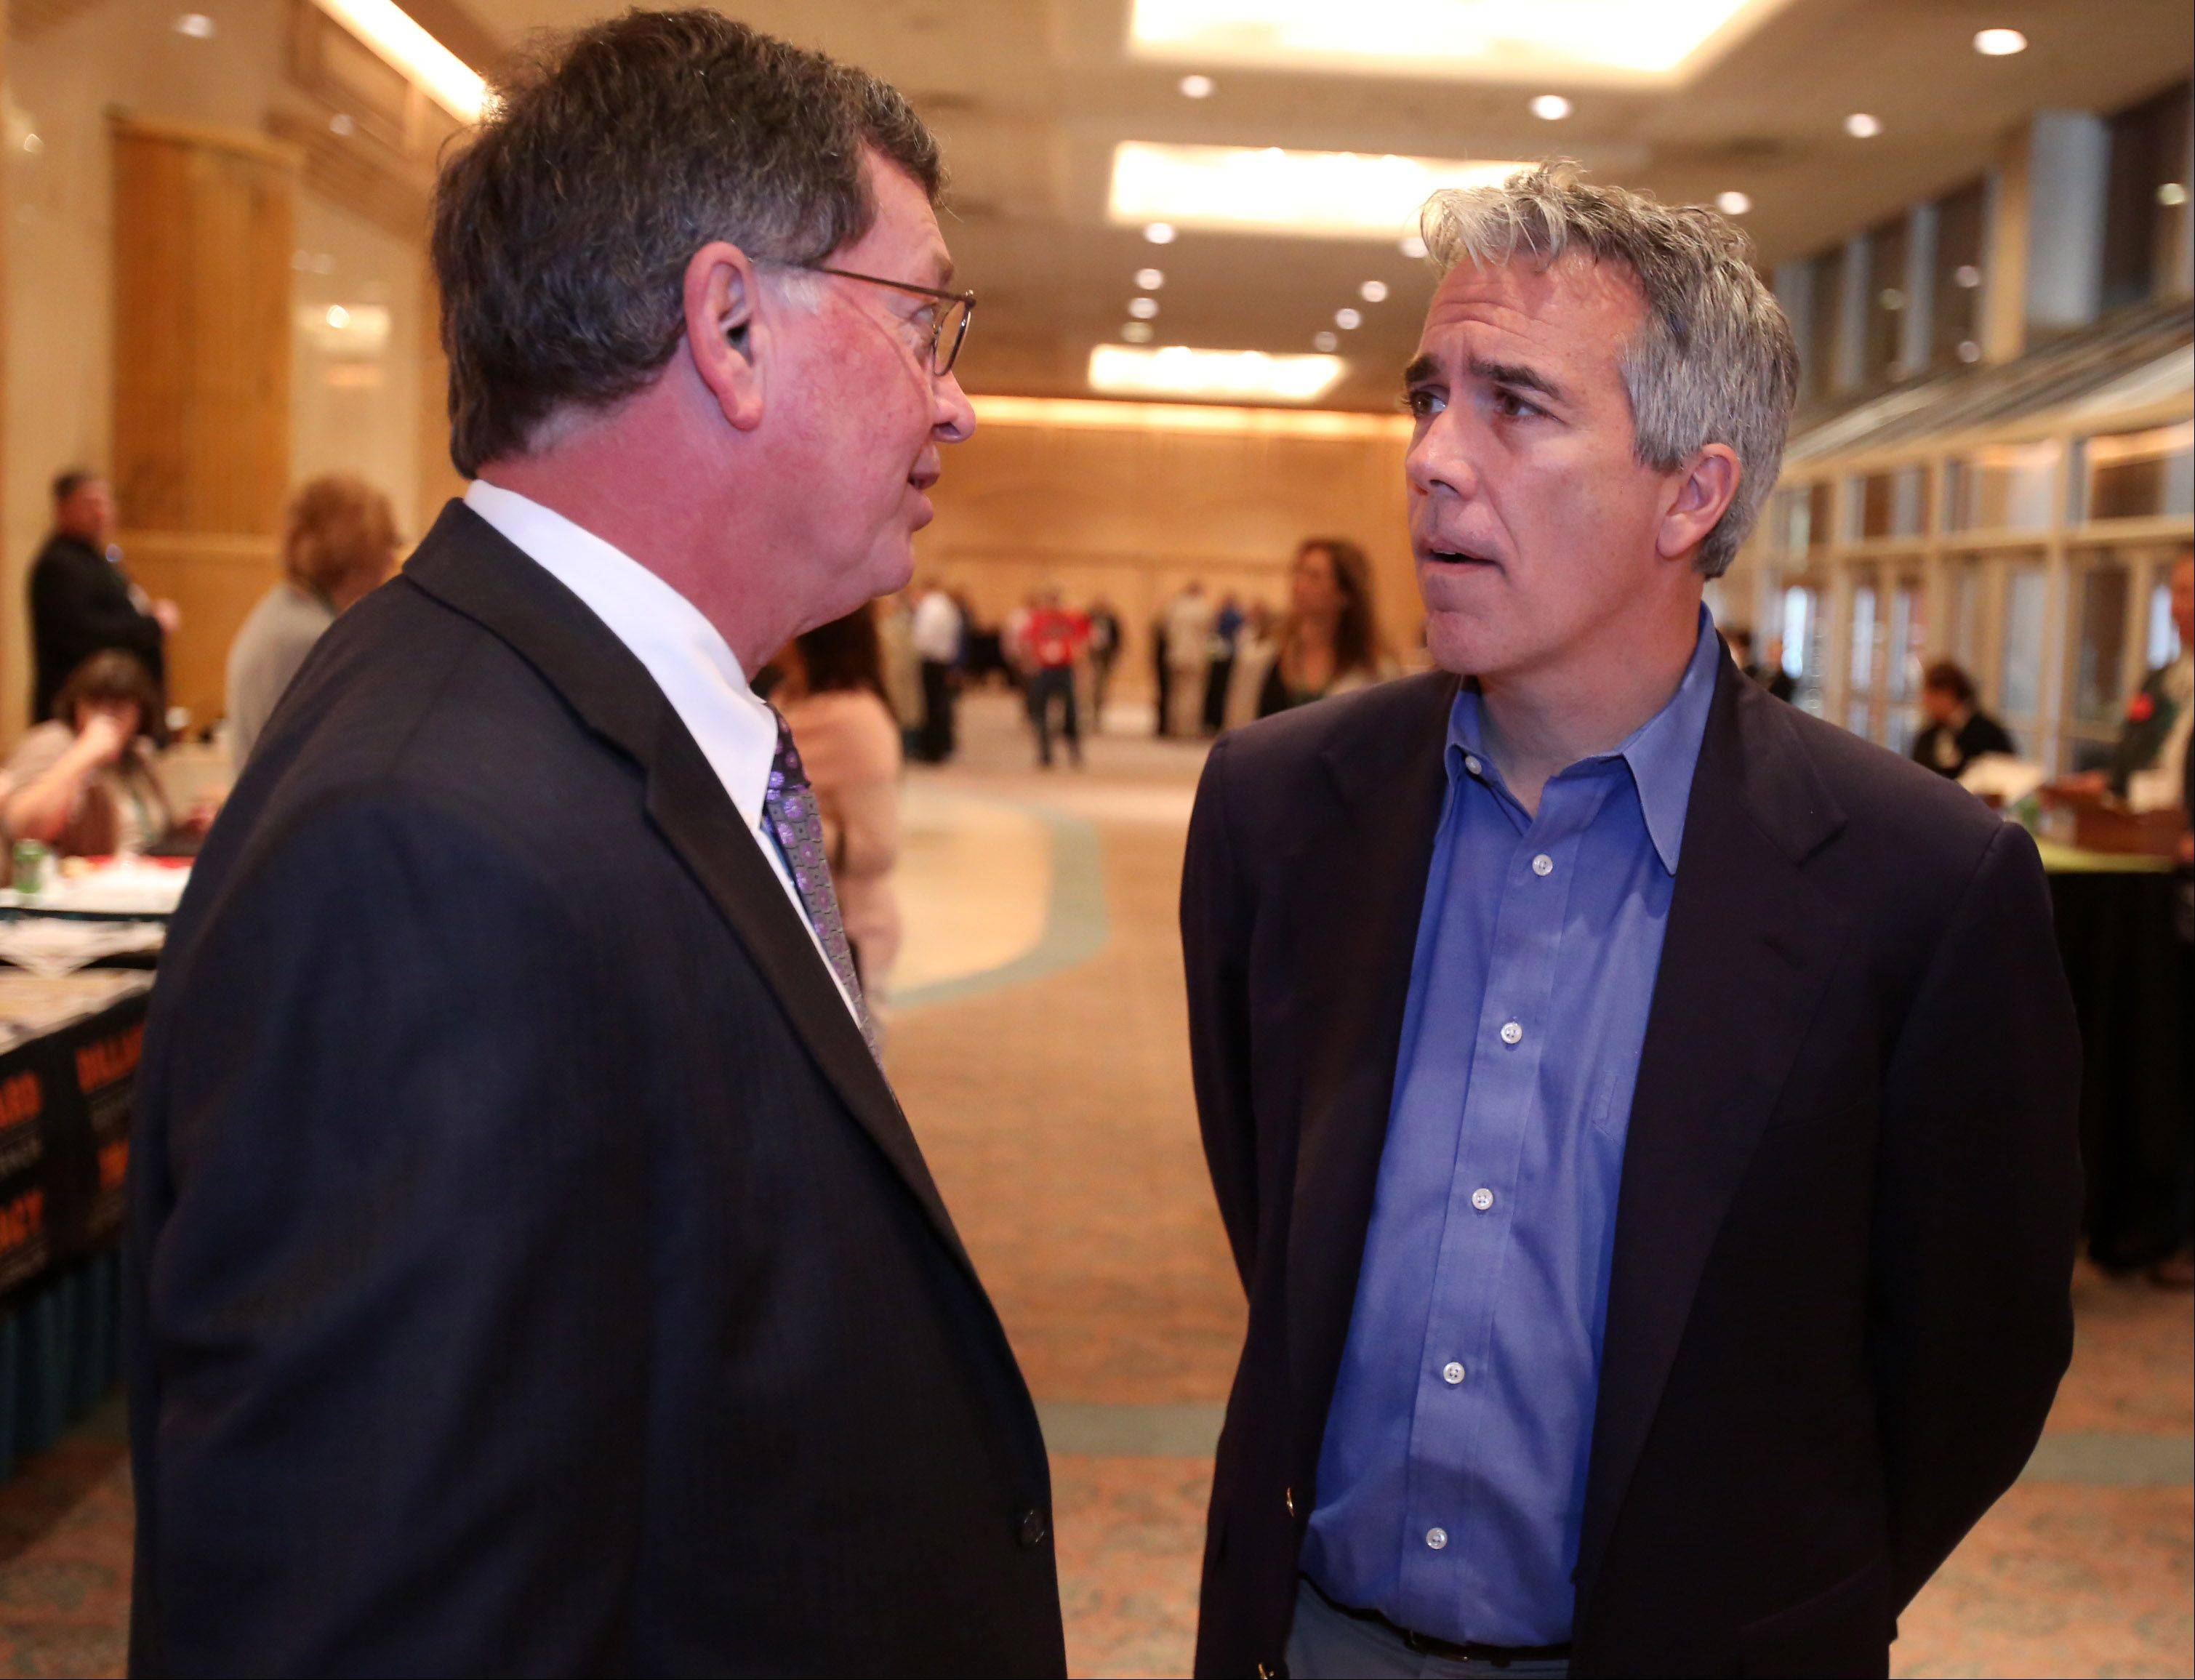 James Bassett, president at Bassett Management Services, left, speaks with conservative radio broadcaster Joe Walsh at the Restore Illinois Summit on Saturday at the Stephens Convention Center in Rosemont.